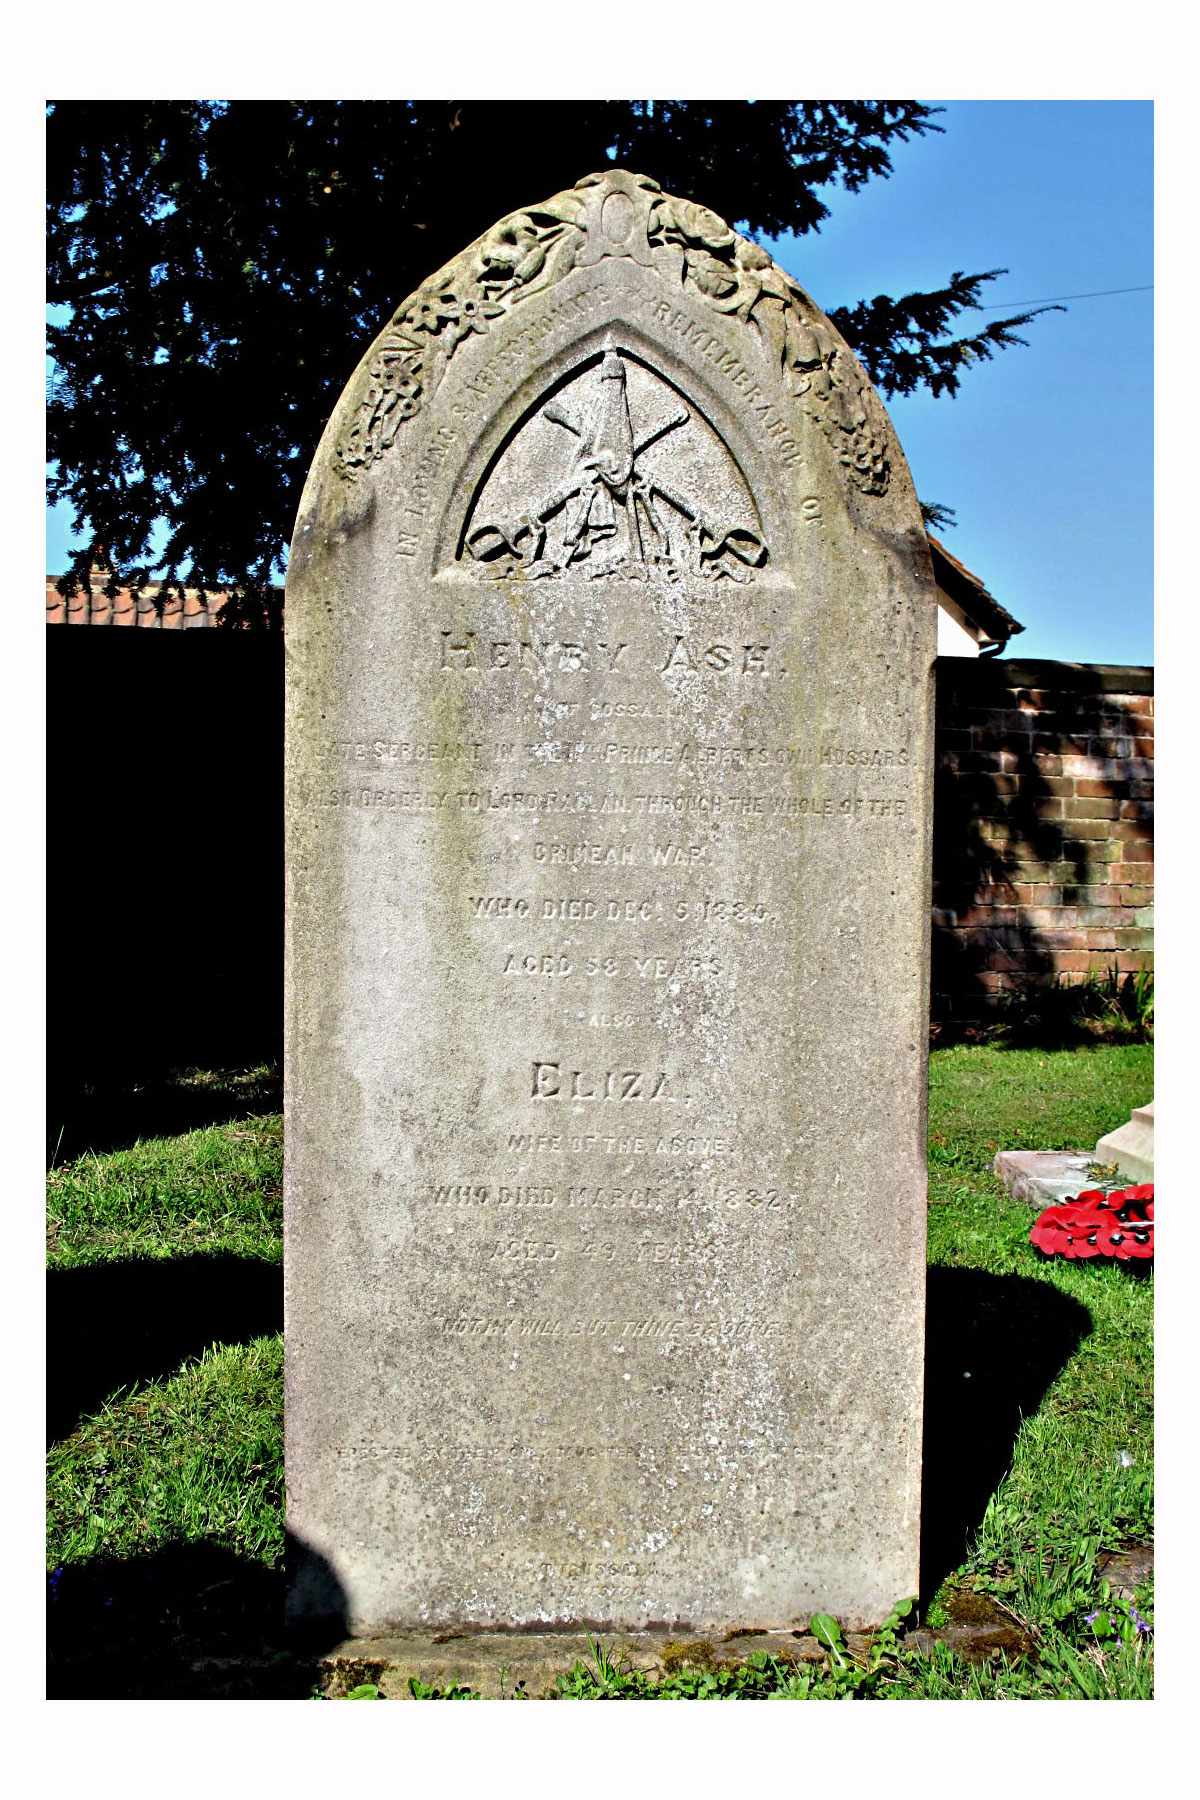 Photograph of Henry Ash's headstone in St. Catherine's churchyard, Cossall, near Ilkeston. Click to enlarge.